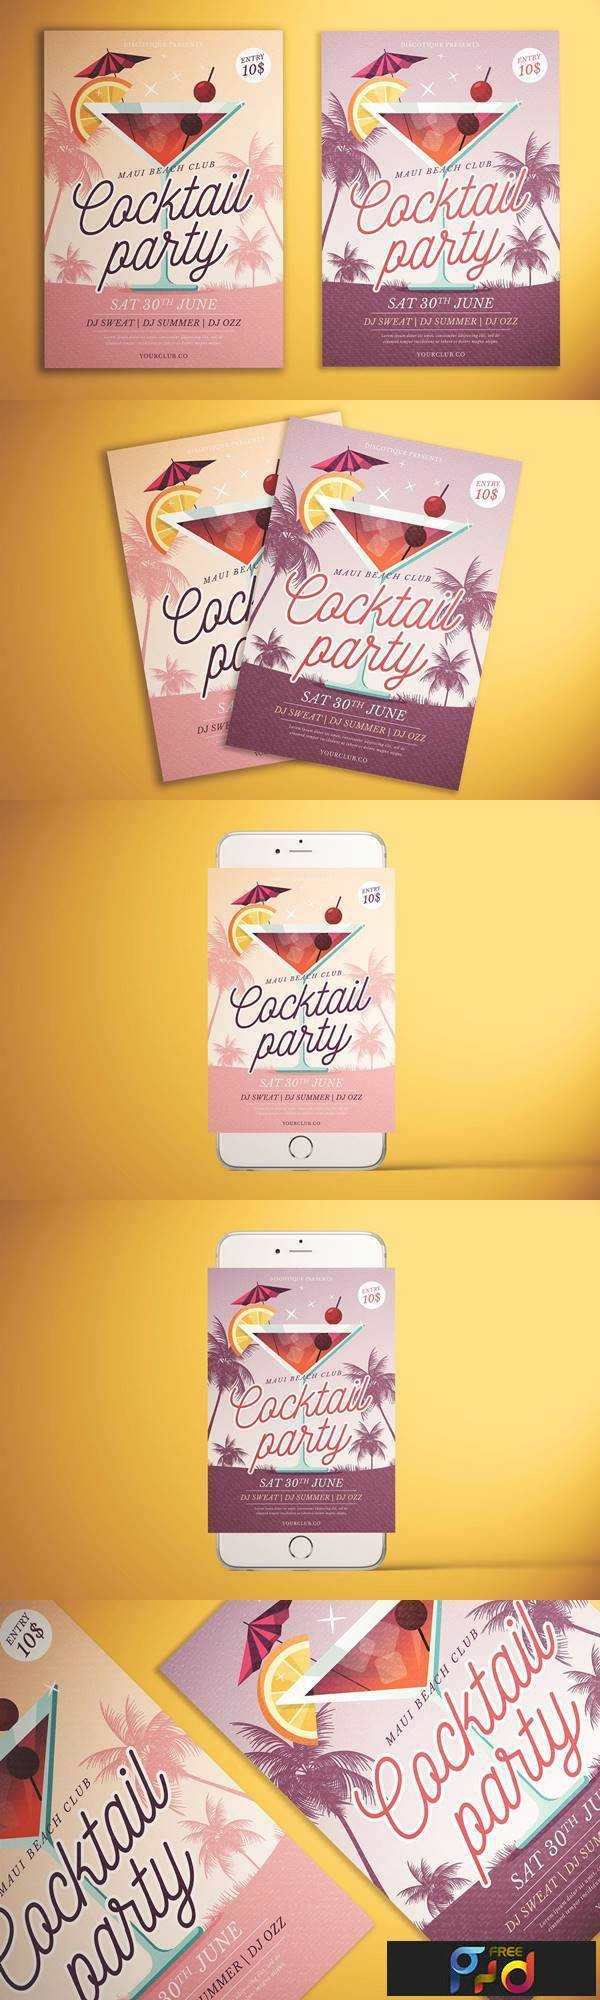 1805297 Cocktail Party Flyer 2480904 1